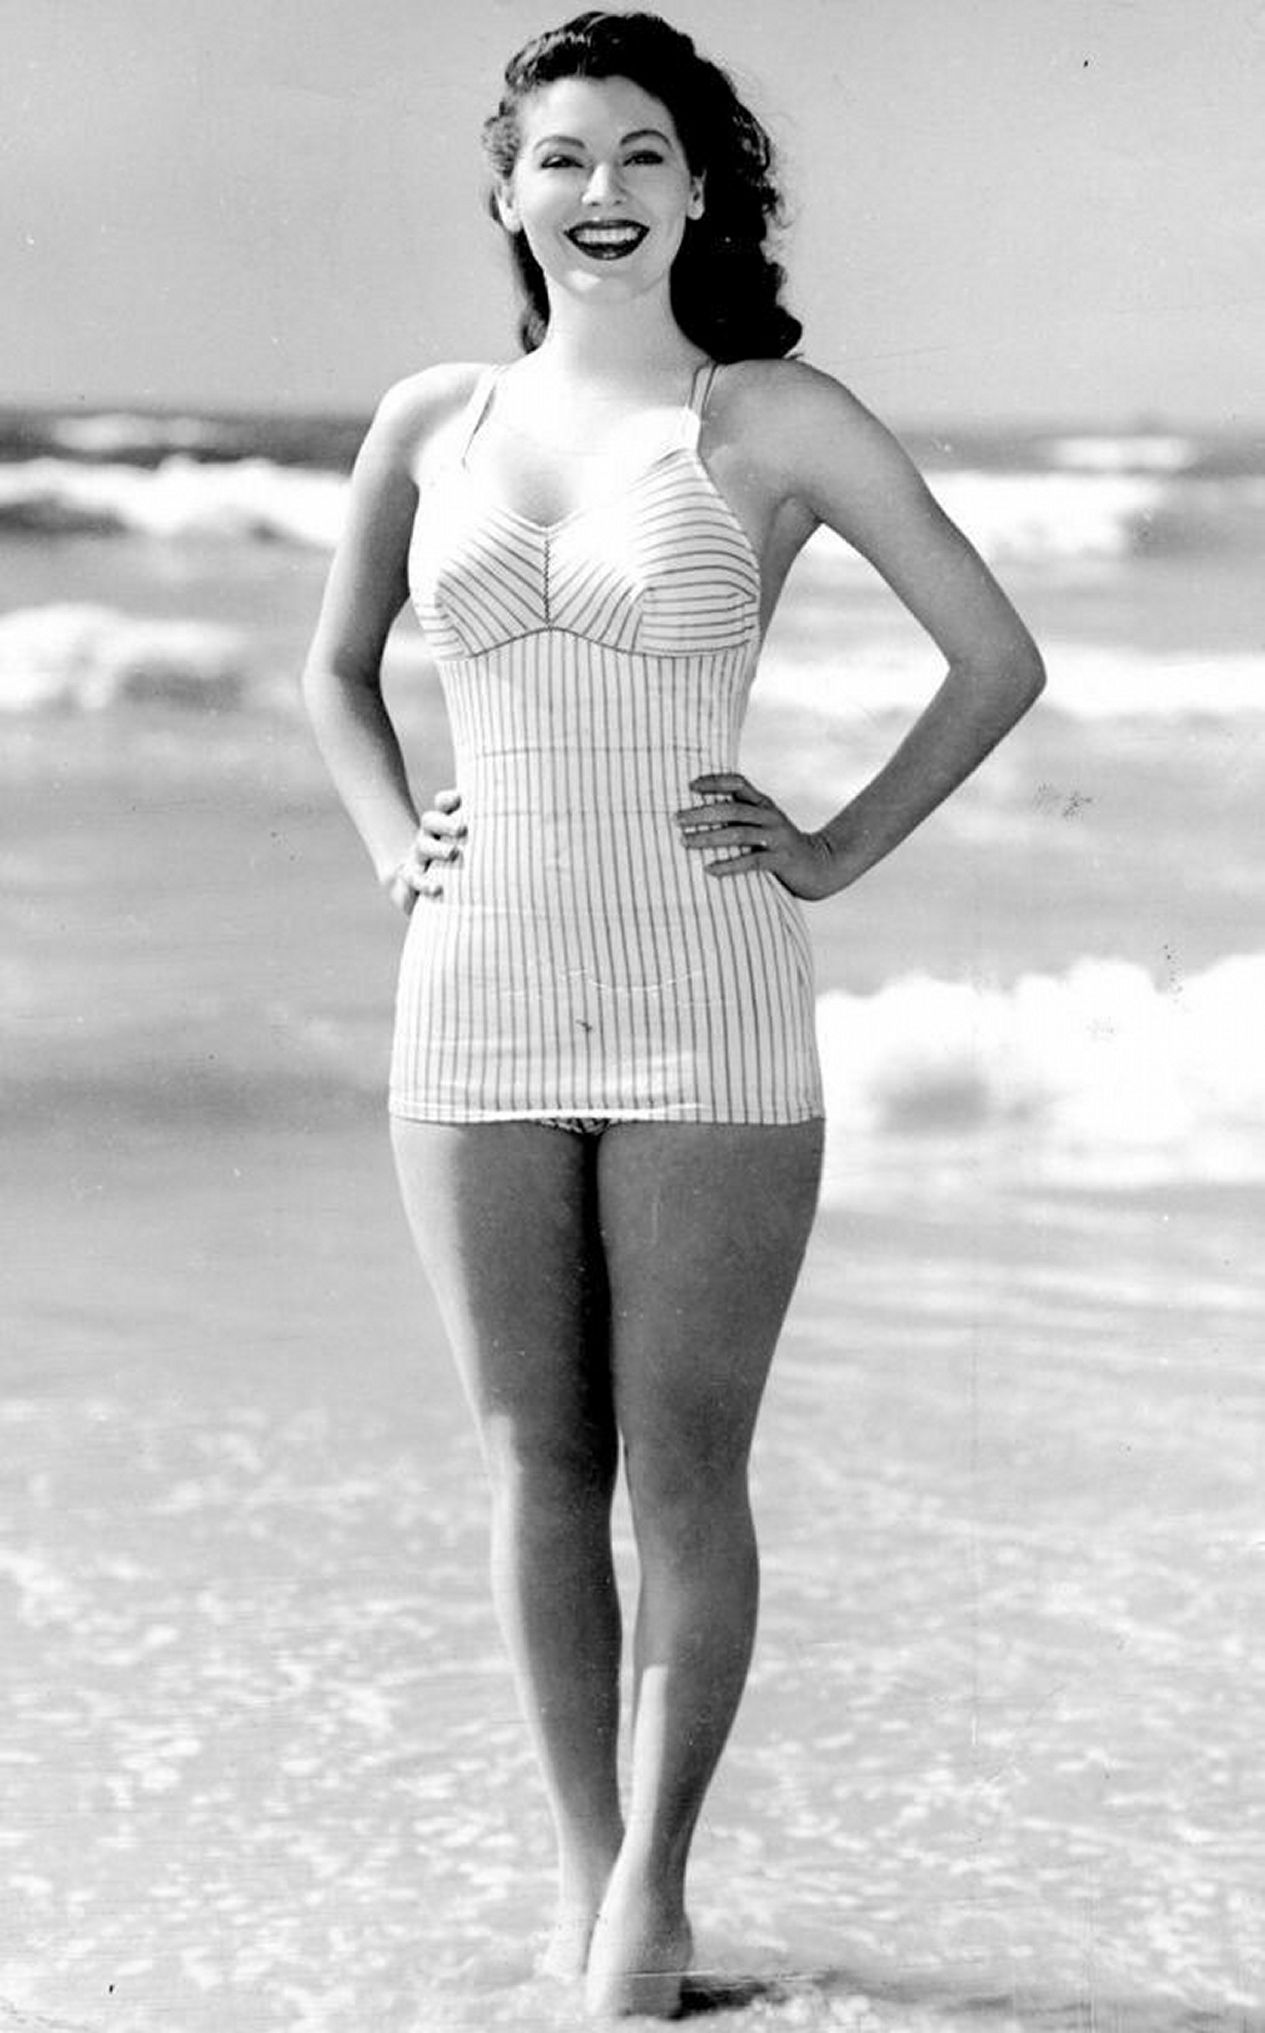 Ava Gardner on a beach. She is wearing a swimsuit